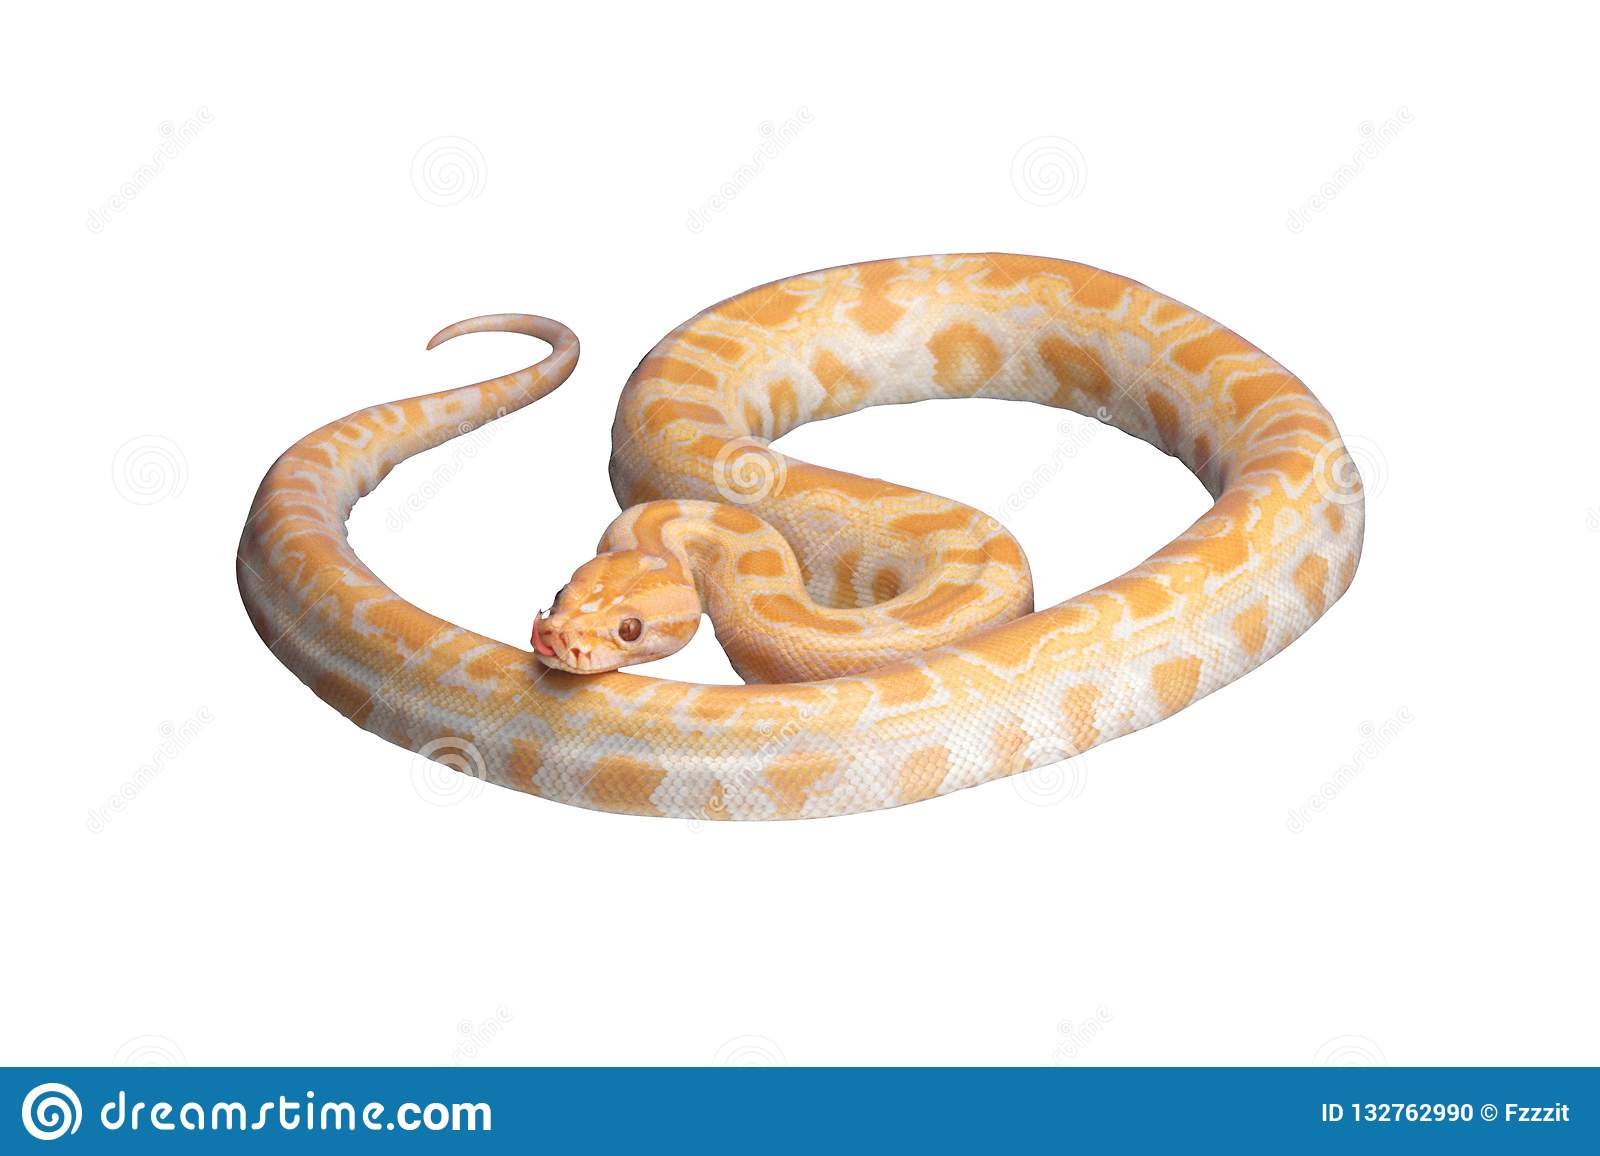 Snake Png Photos Free Royalty Free Stock Photos From Dreamstime Over 473 snakes png images are found on vippng. https www dreamstime com snake png transparent background orange format quality x image132762990